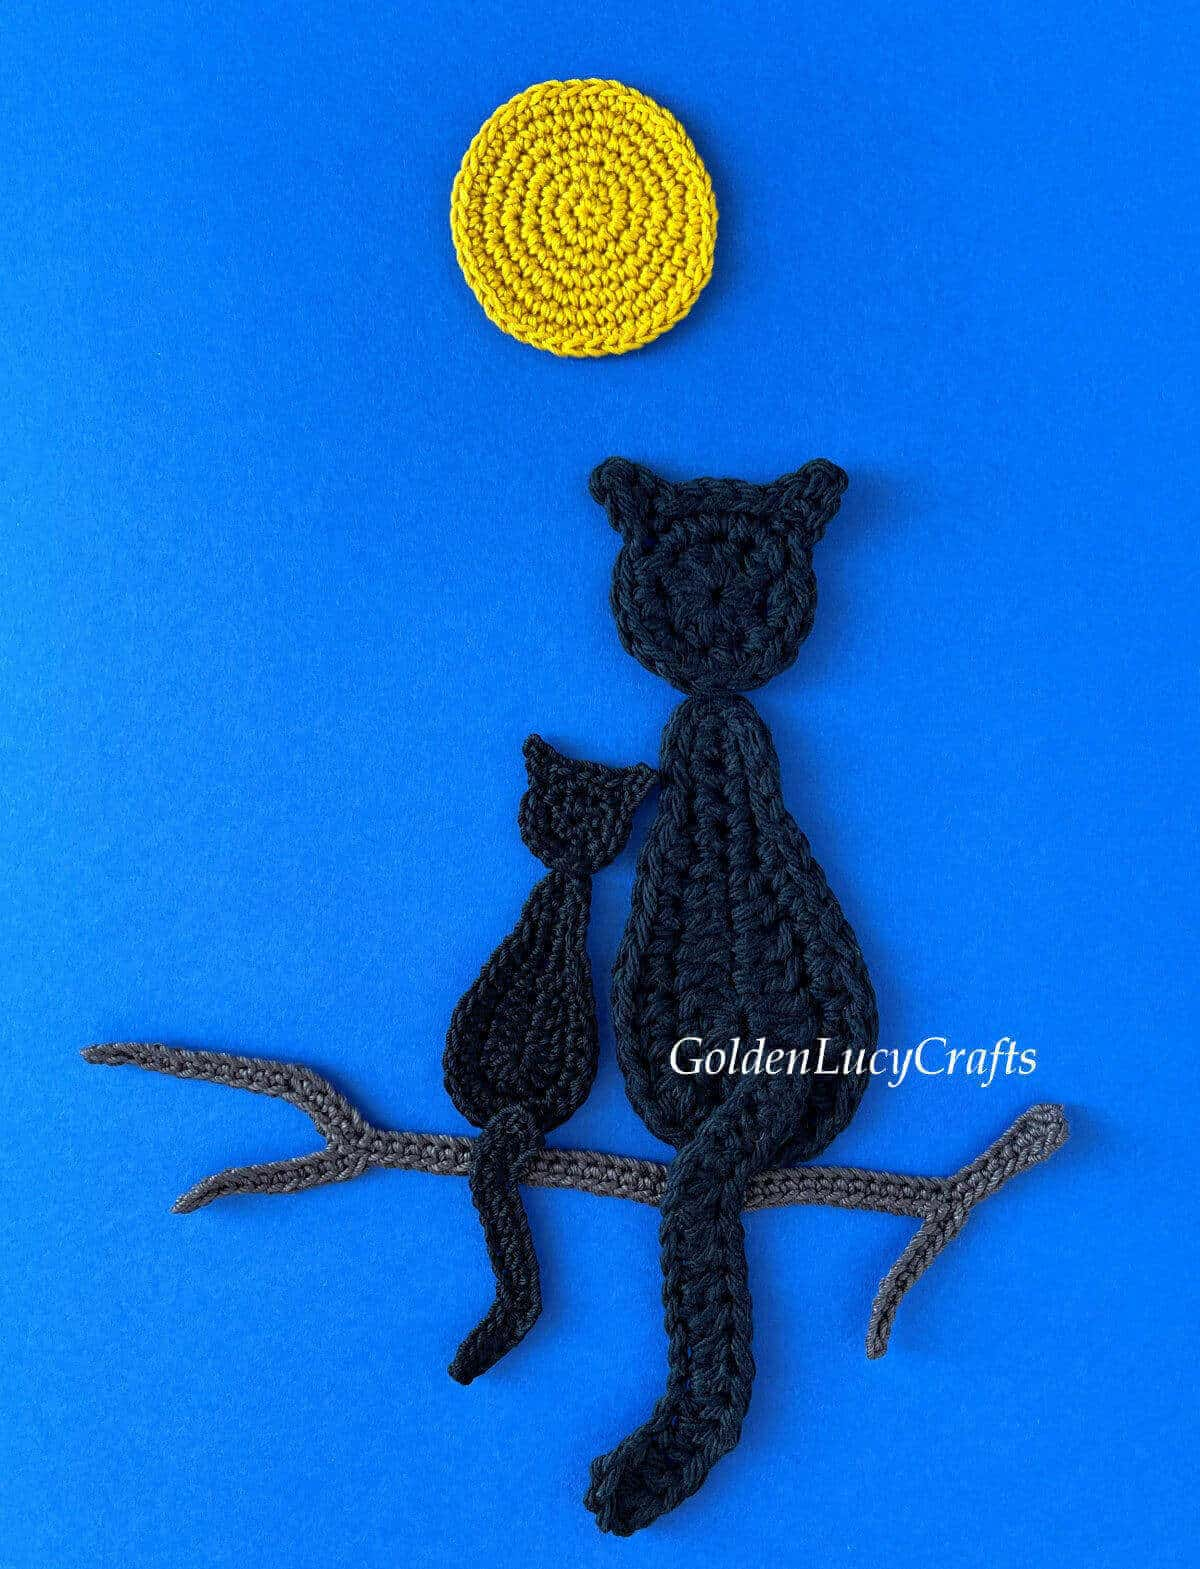 Crocheted one big and one small black cats sitting on a tree branch under a full moon on dark blue background.